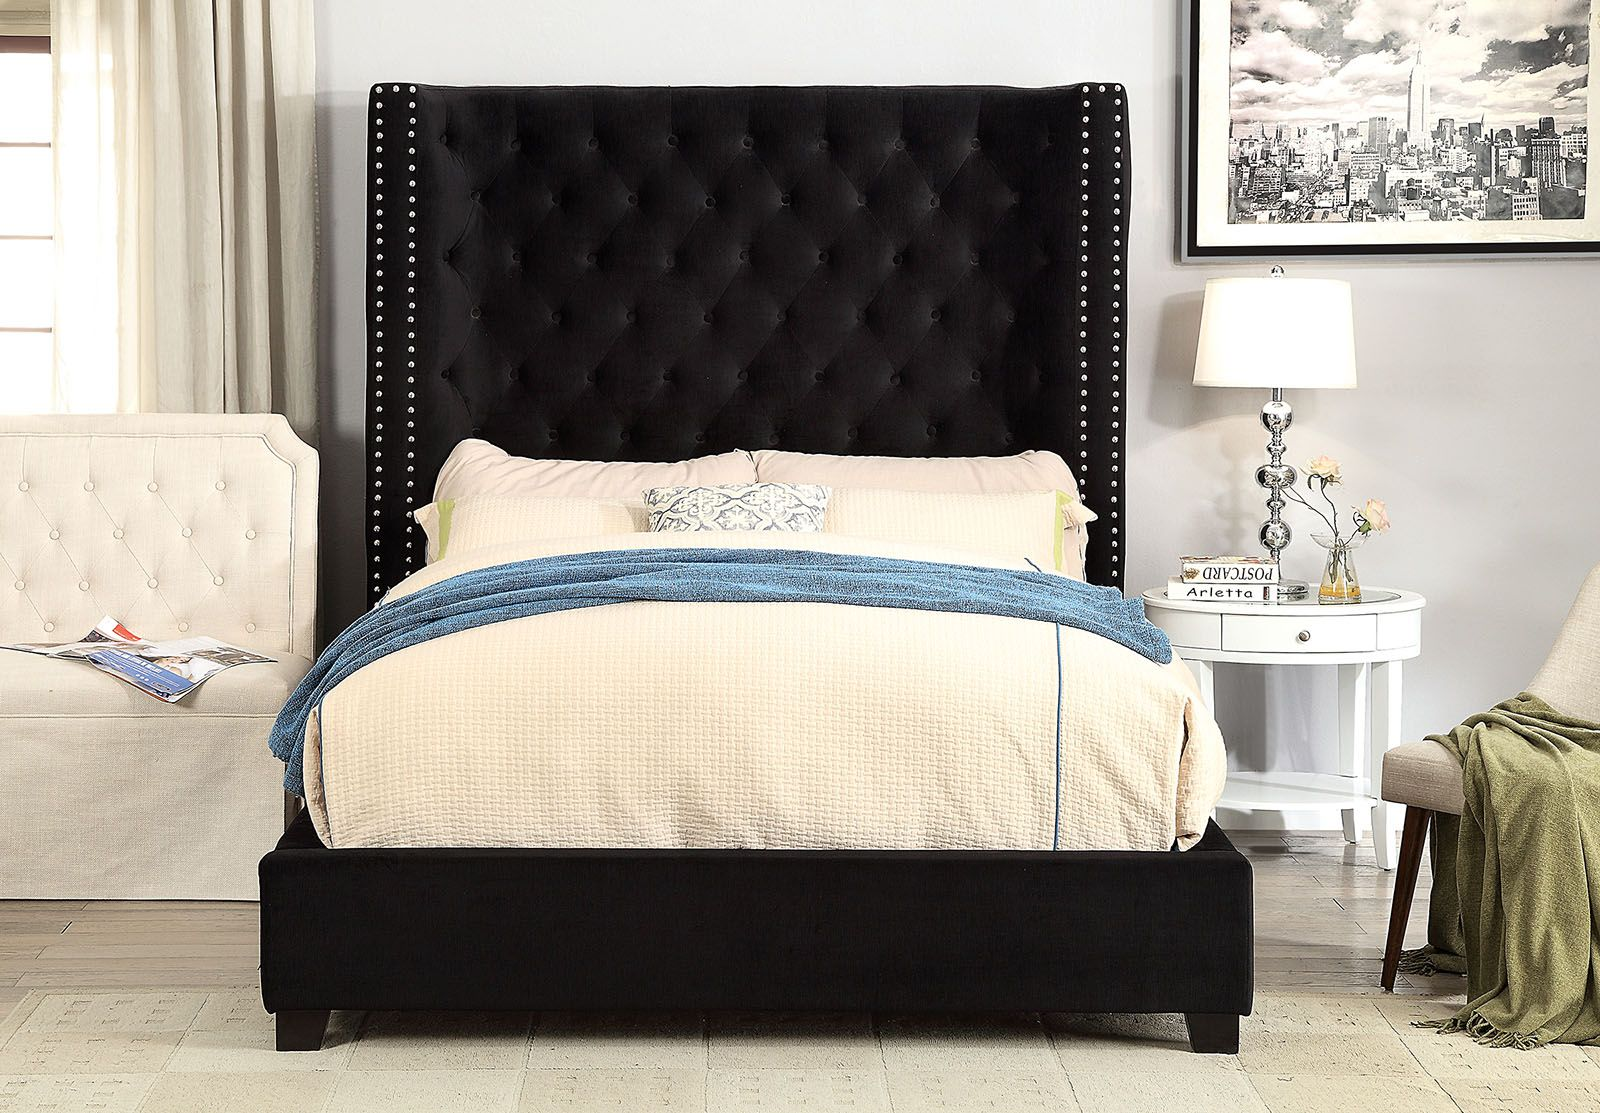 Cm7679bk Mirabelle Black Fabric And Tufted Tall Queen Headboard